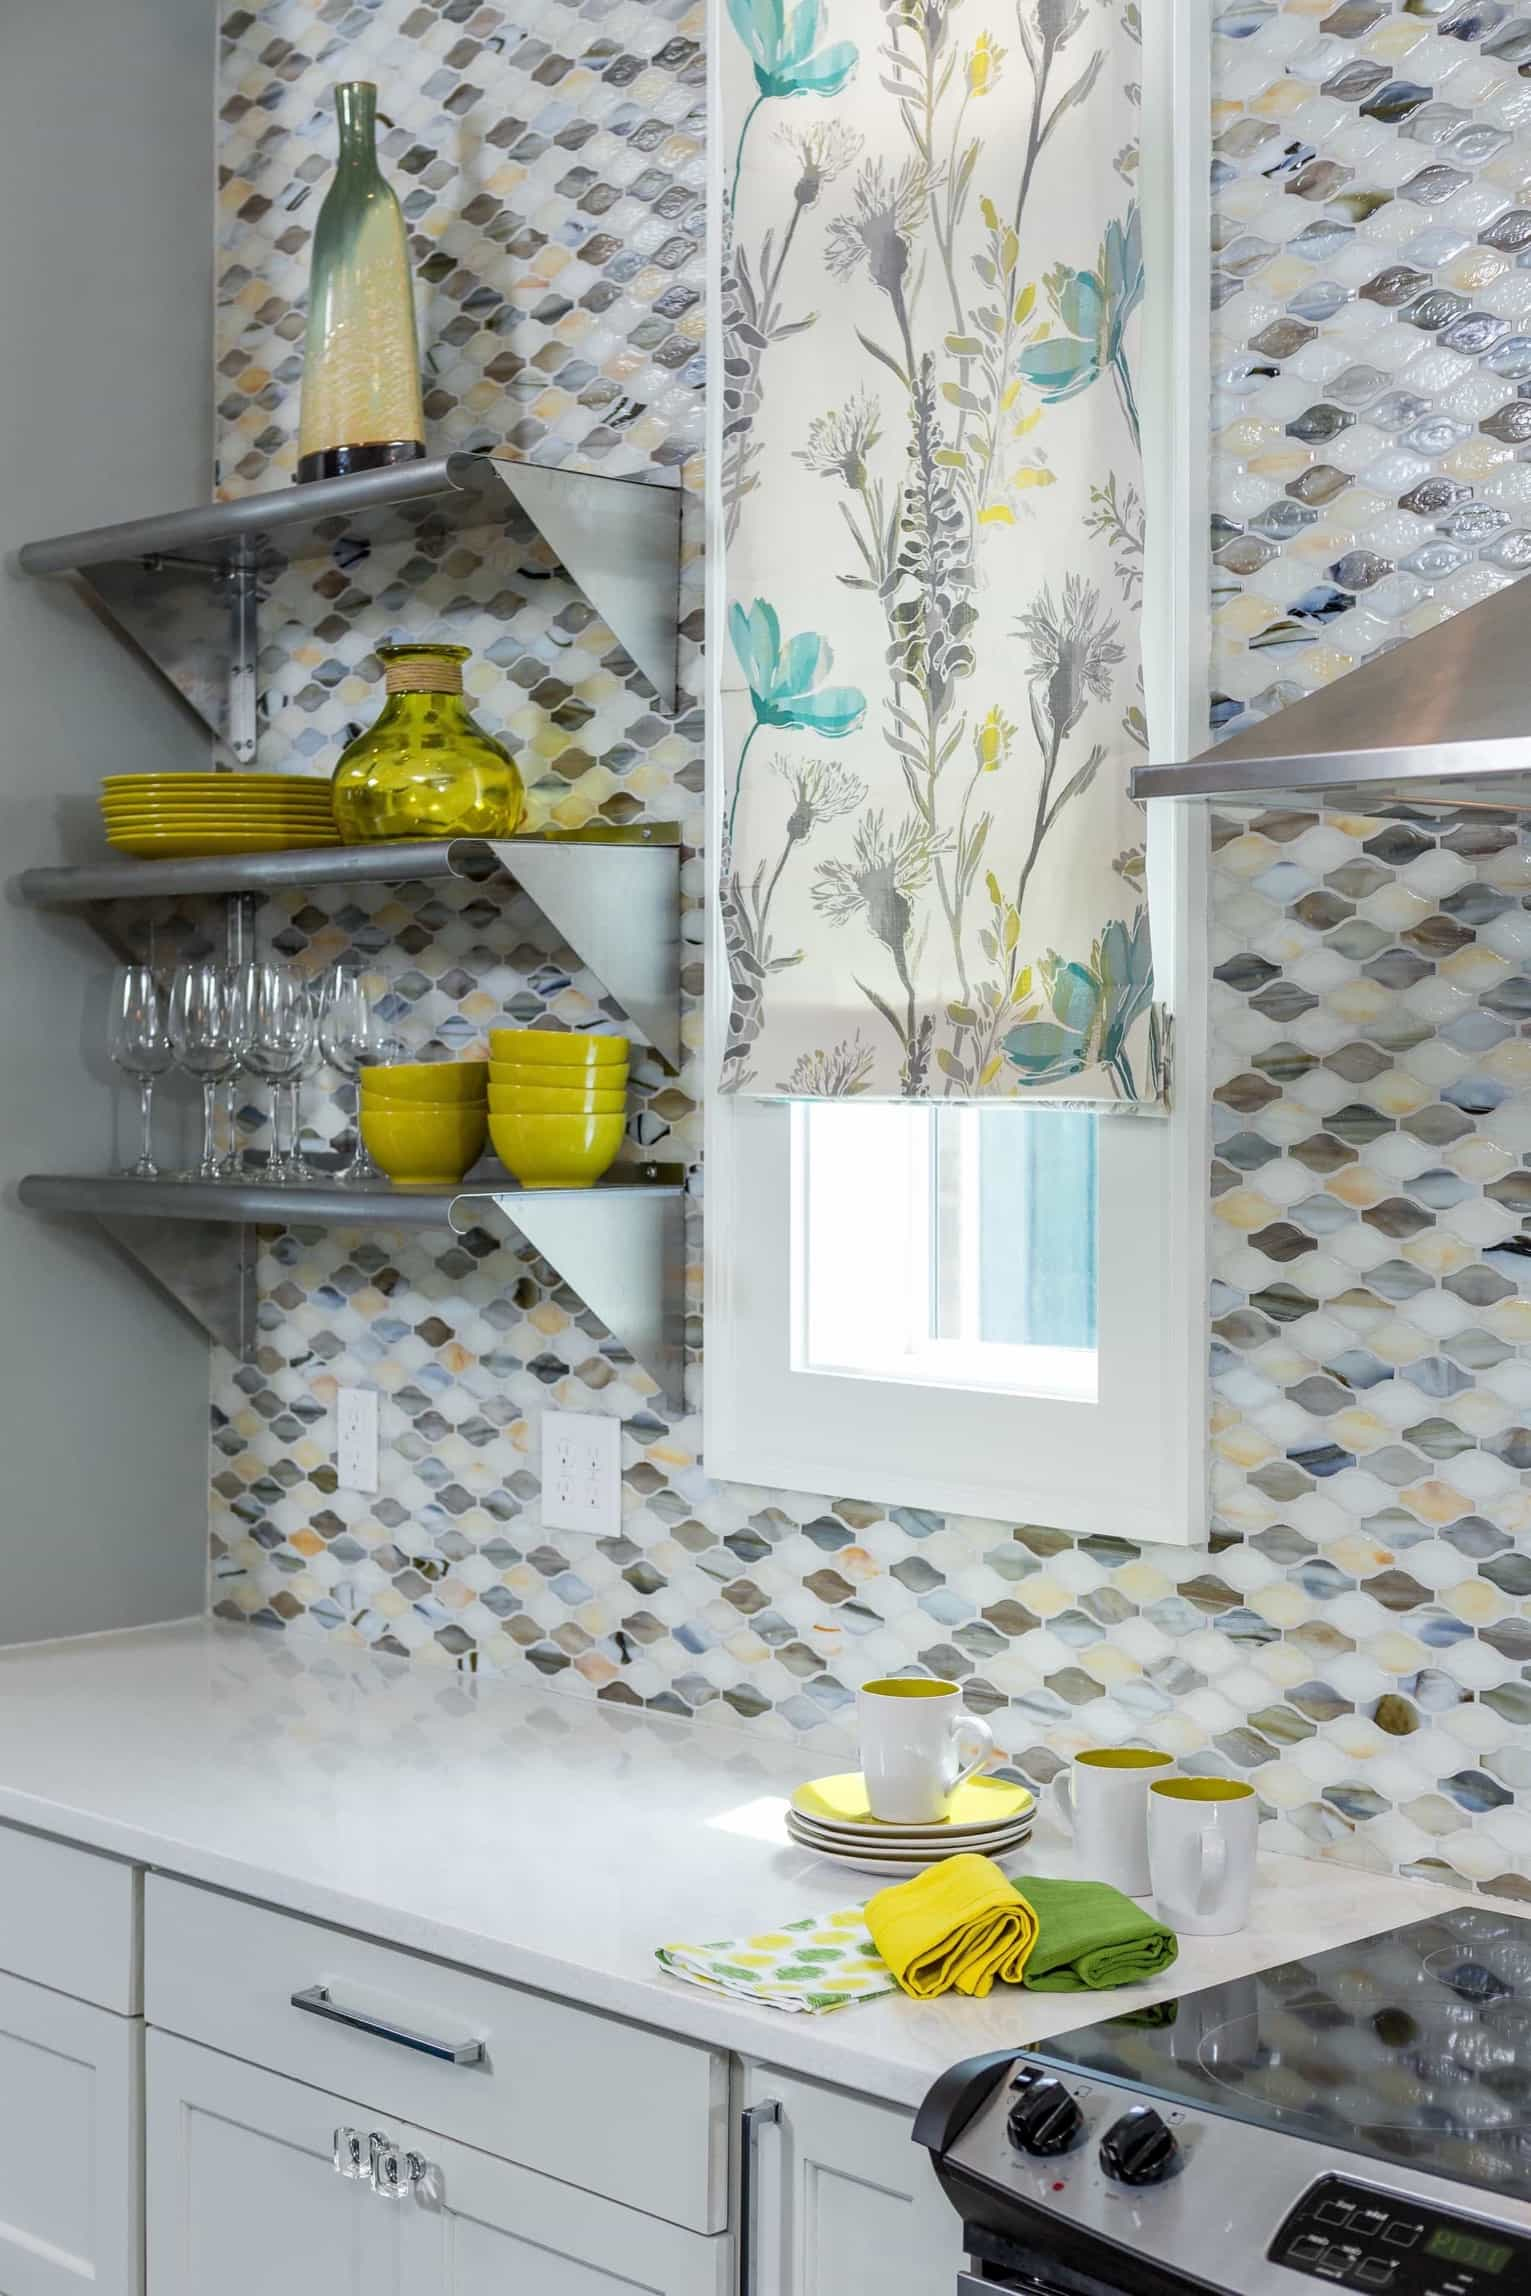 Featured Image of Eclectic Kitchen With Gray Yellow And White Tile And Art